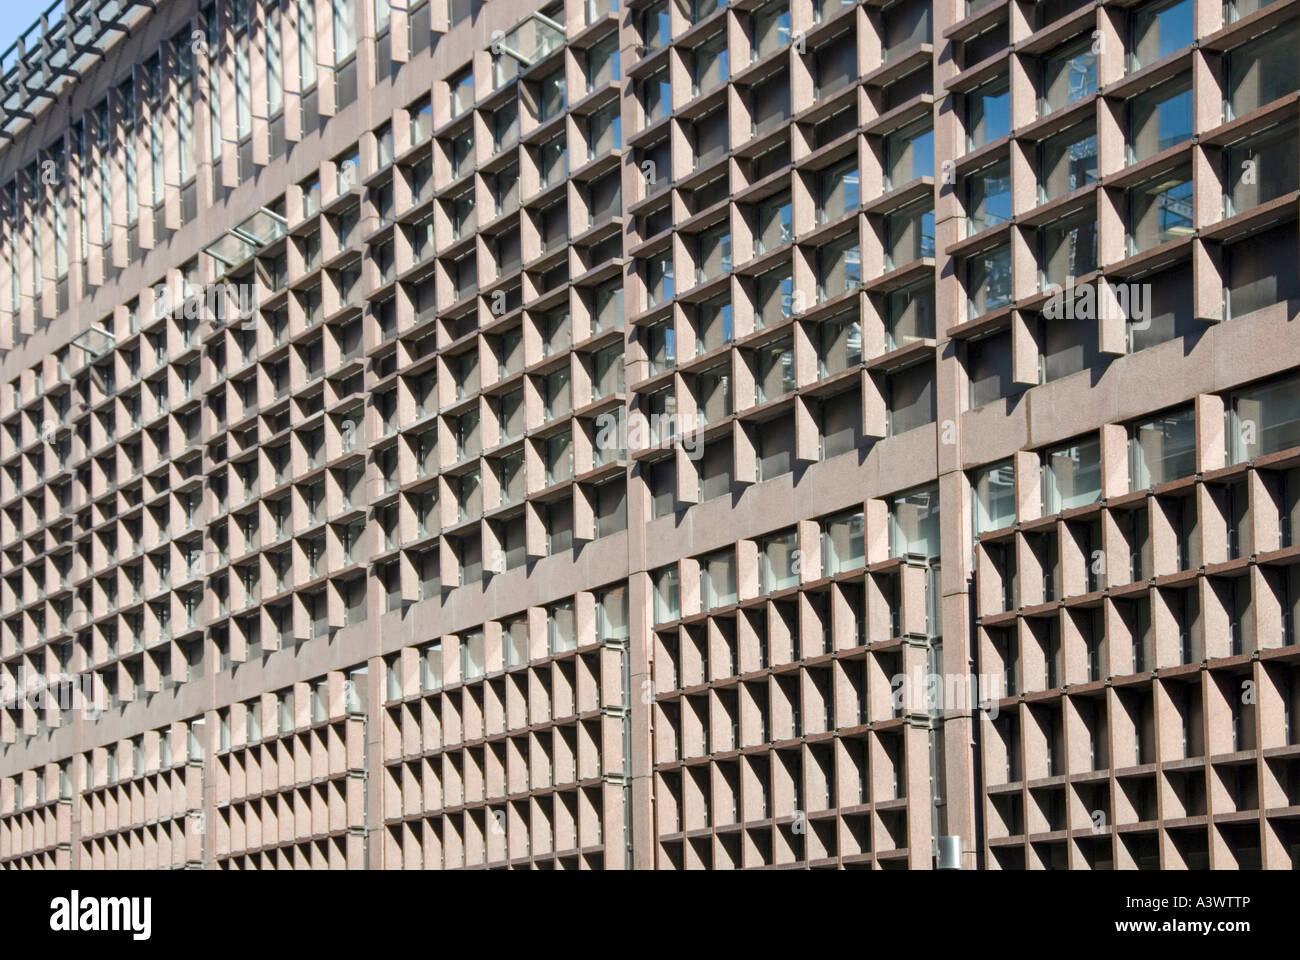 Repetitive visual pattern picture of office block elevation windows in deeply recessed squares and rectangles - Stock Image